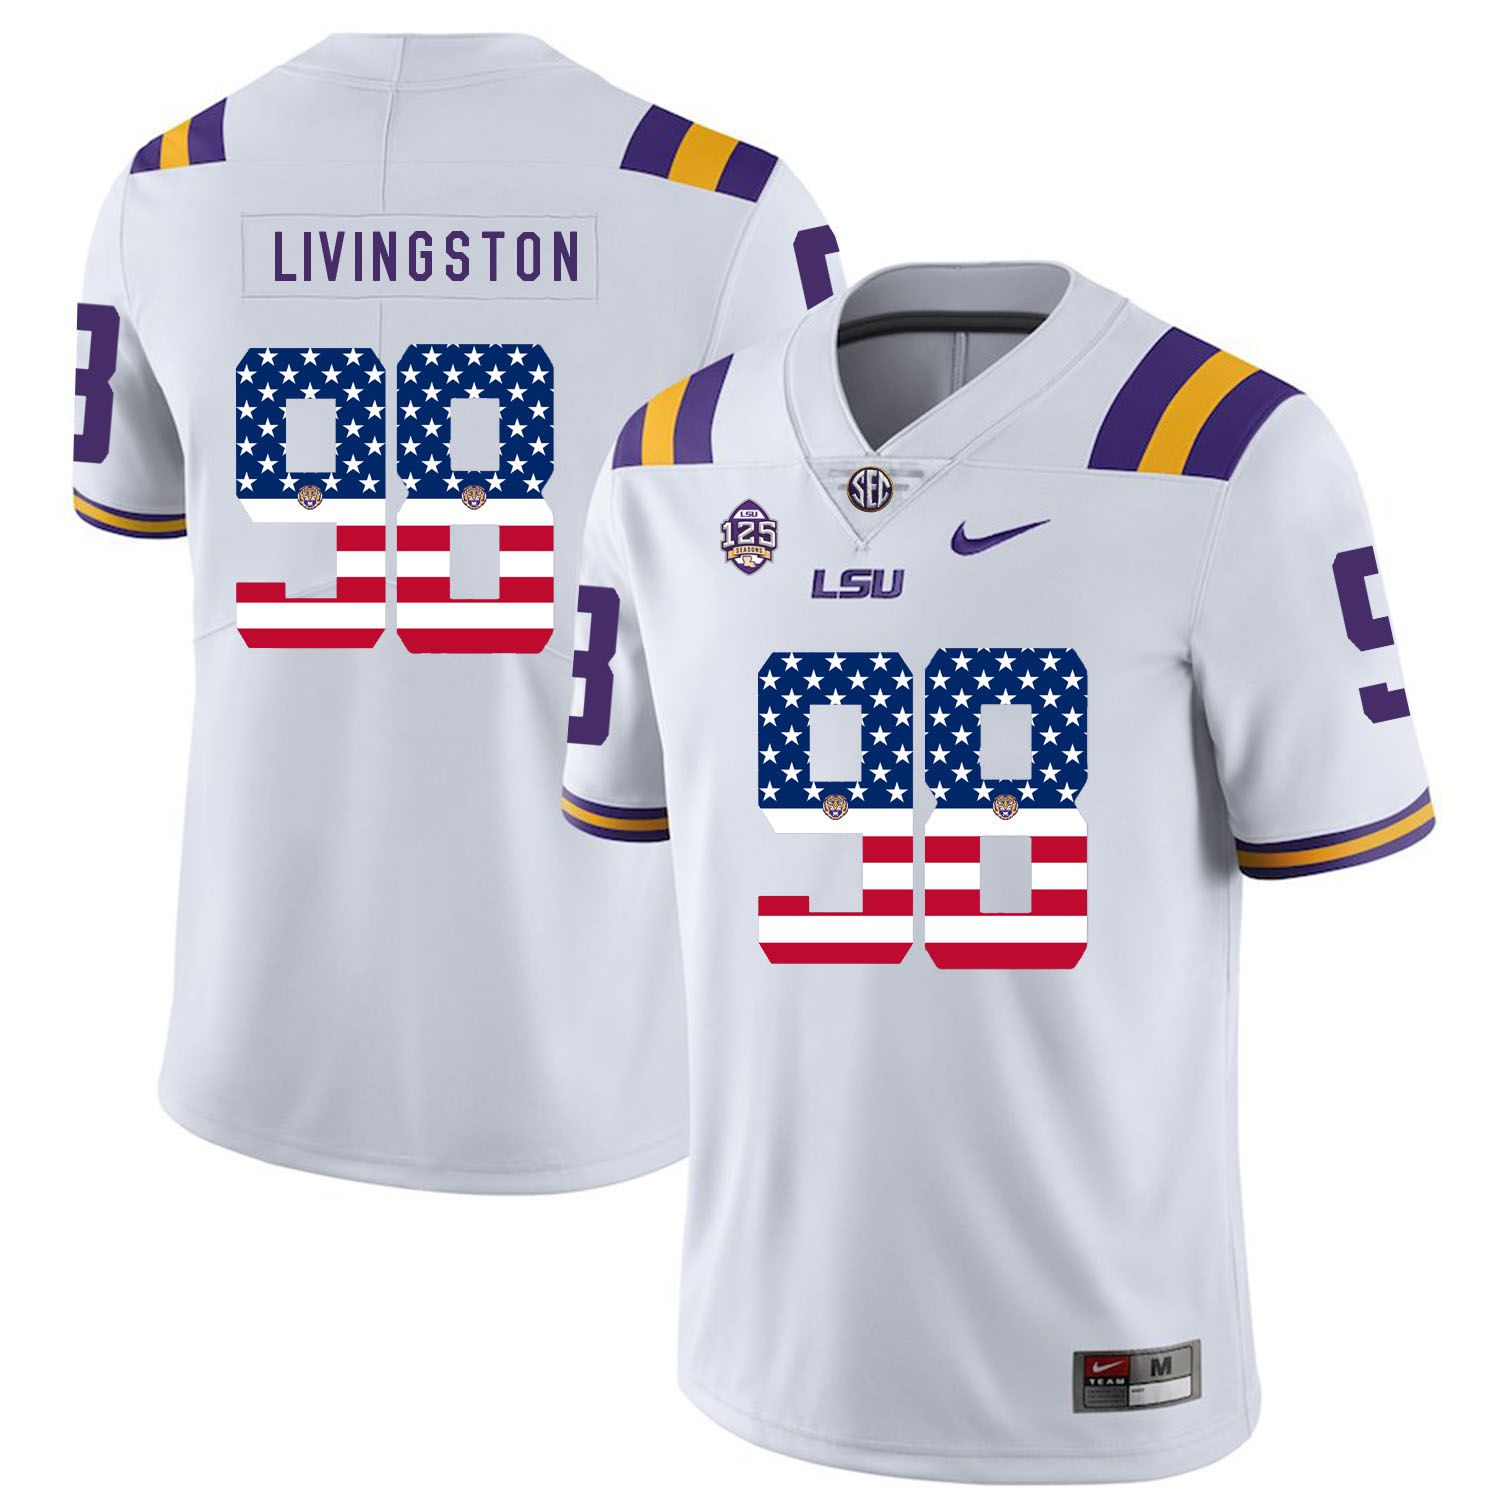 Men LSU Tigers 98 Livingston White Flag Customized NCAA Jerseys